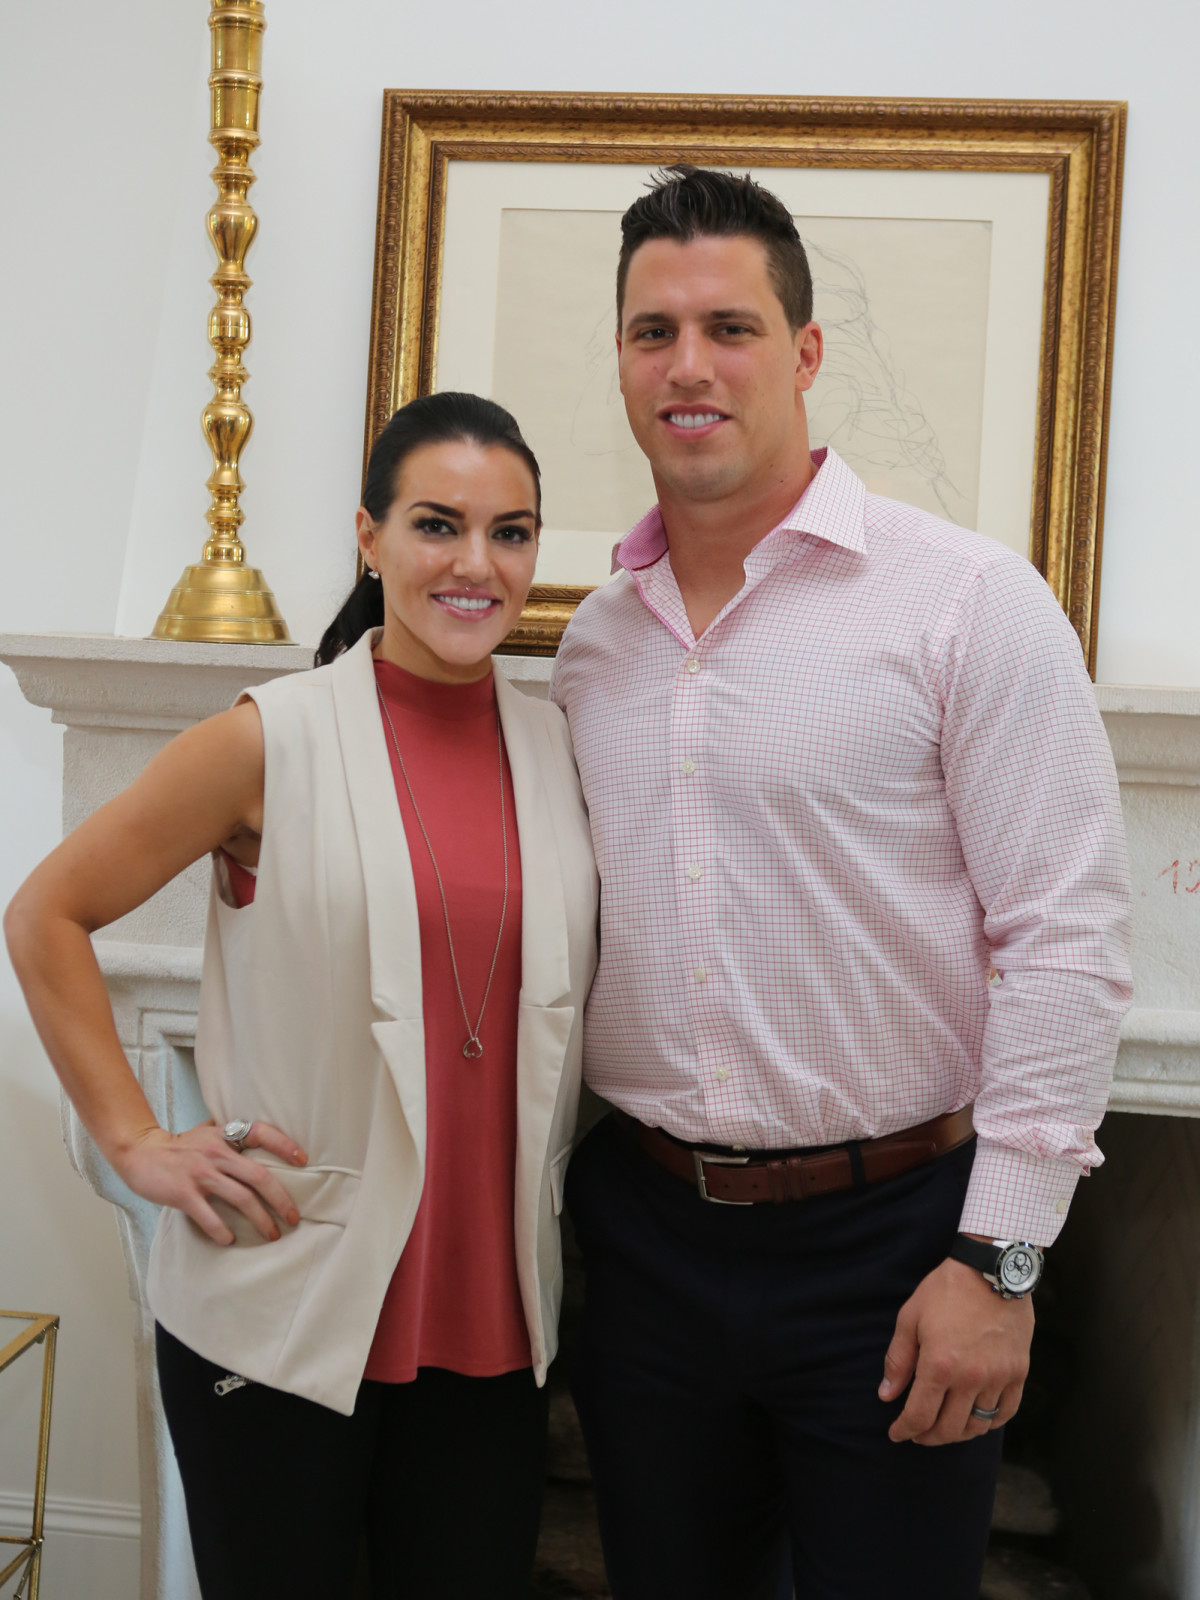 Friday Night Lights kick off Megan and Brian Cushing